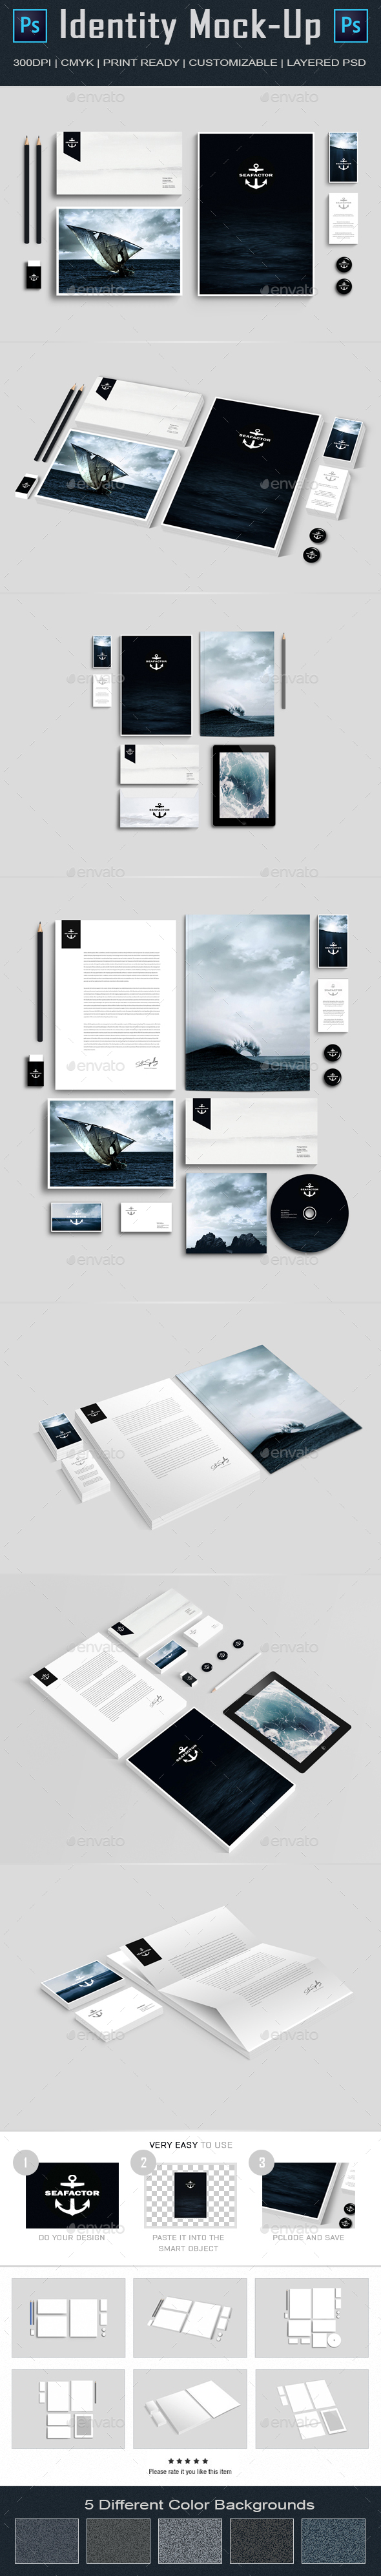 Branding Identity Mock Up I (Stationery)